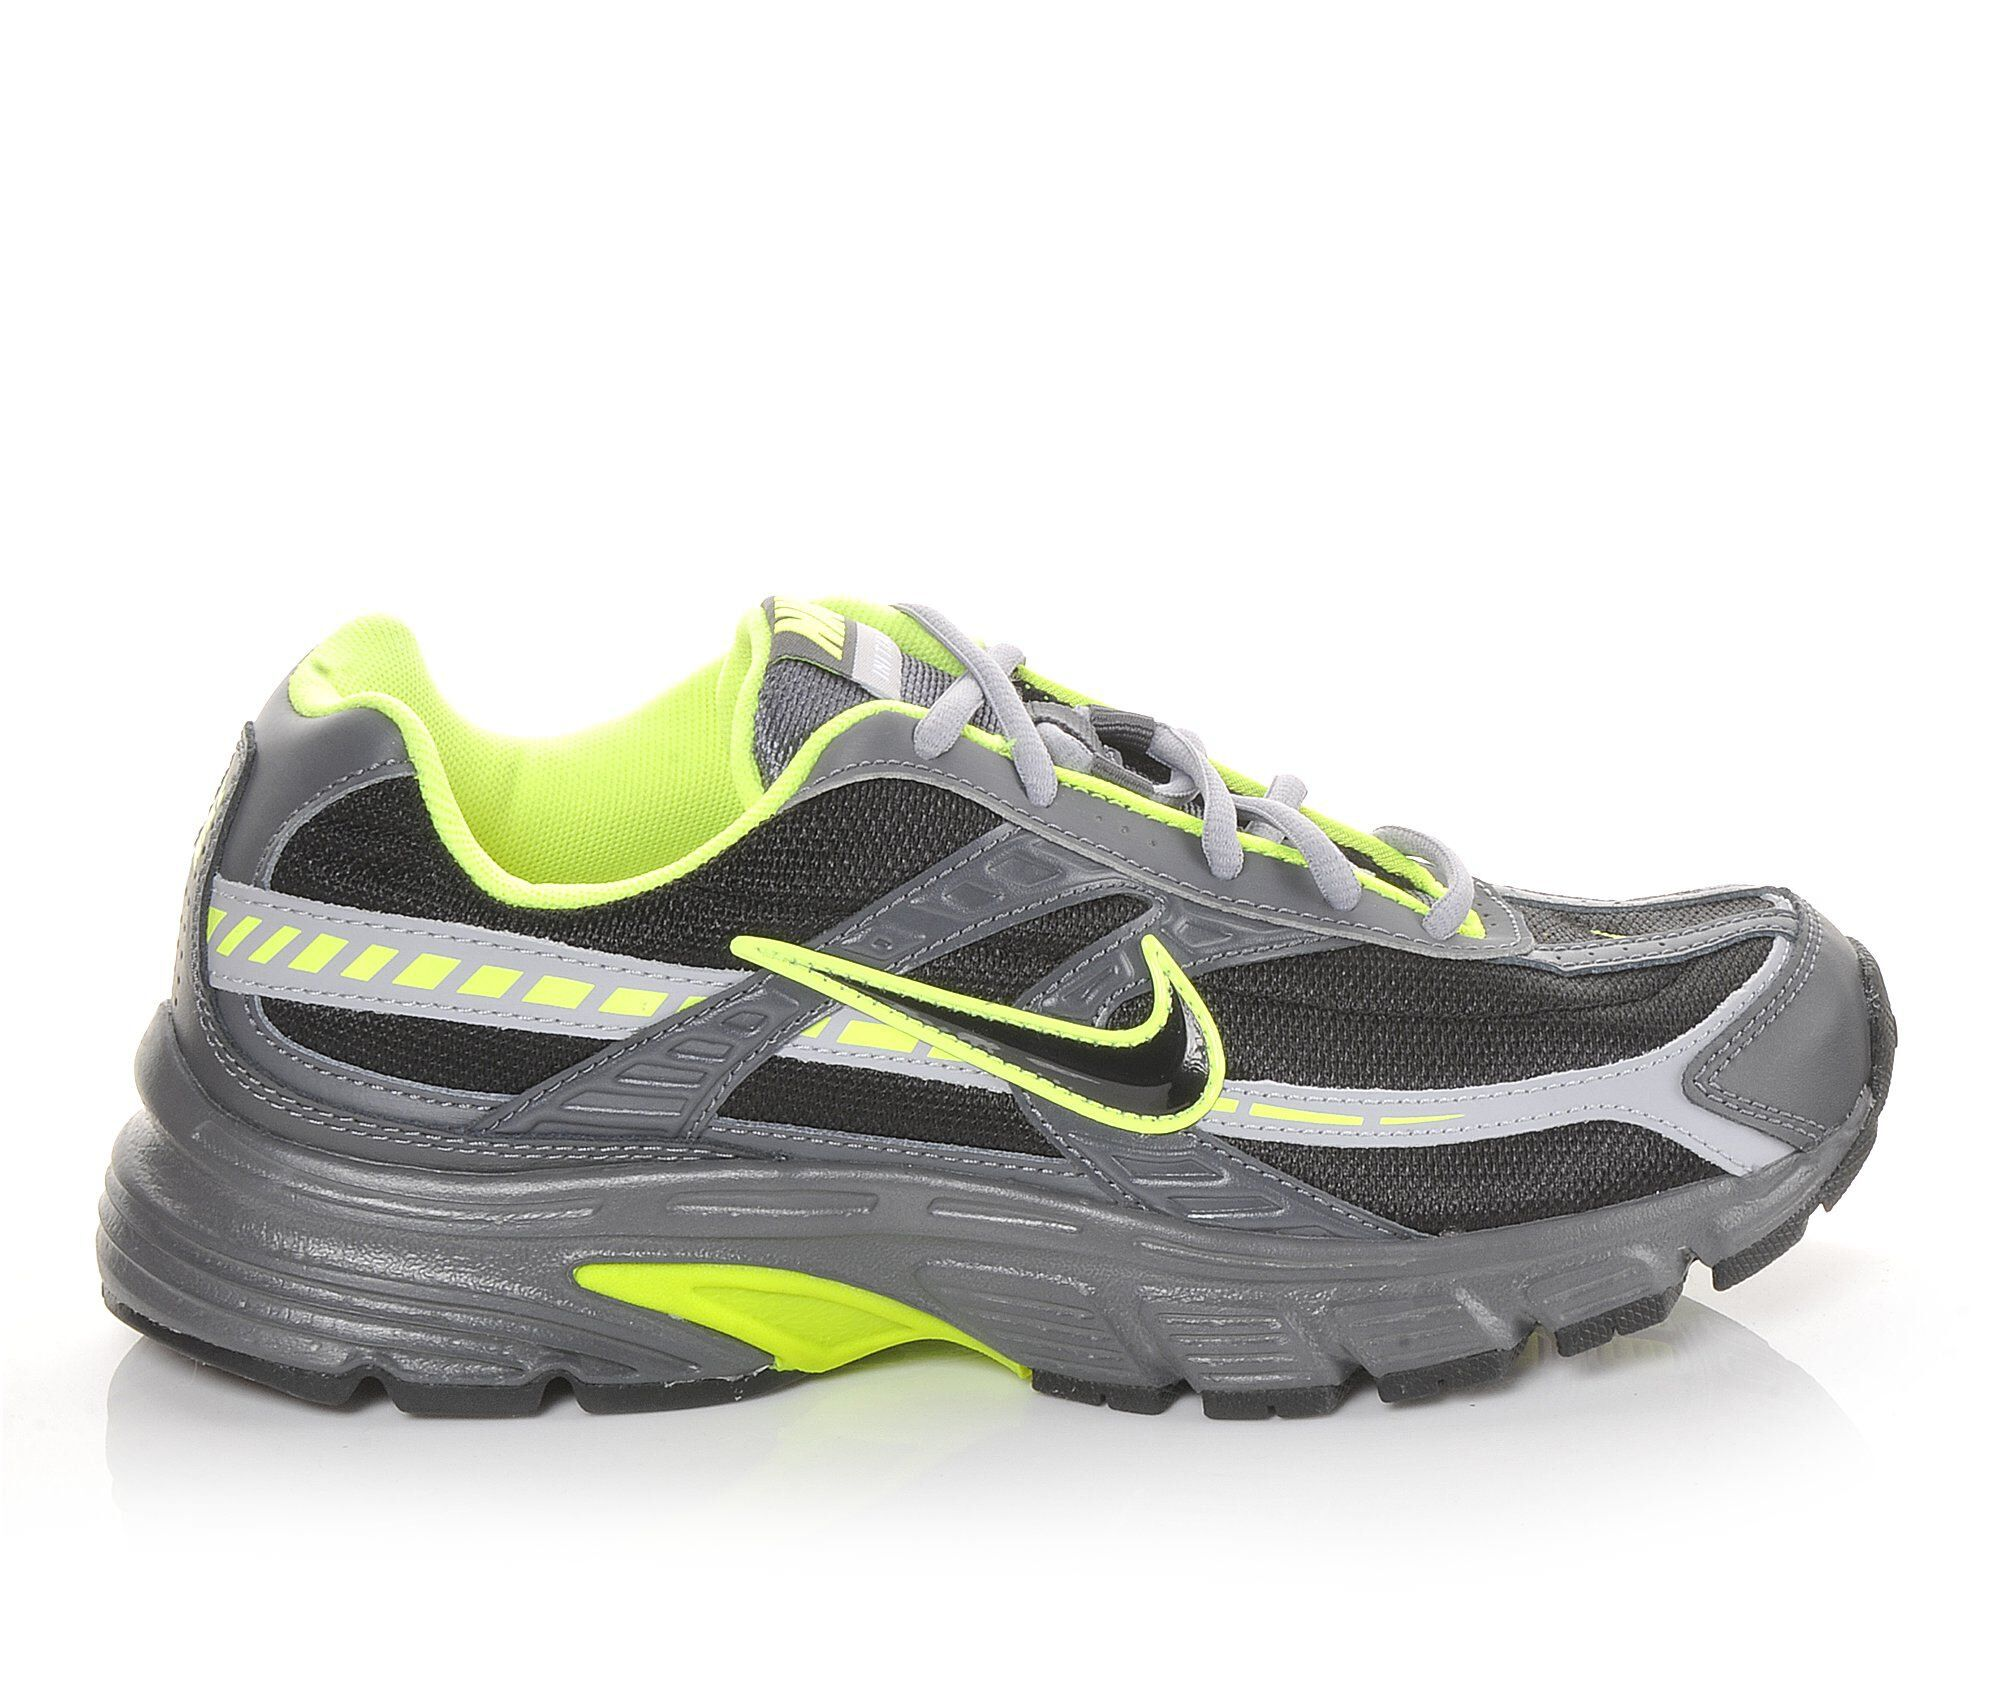 Men's Nike Initiator Running Shoes Blk/Gry/Volt